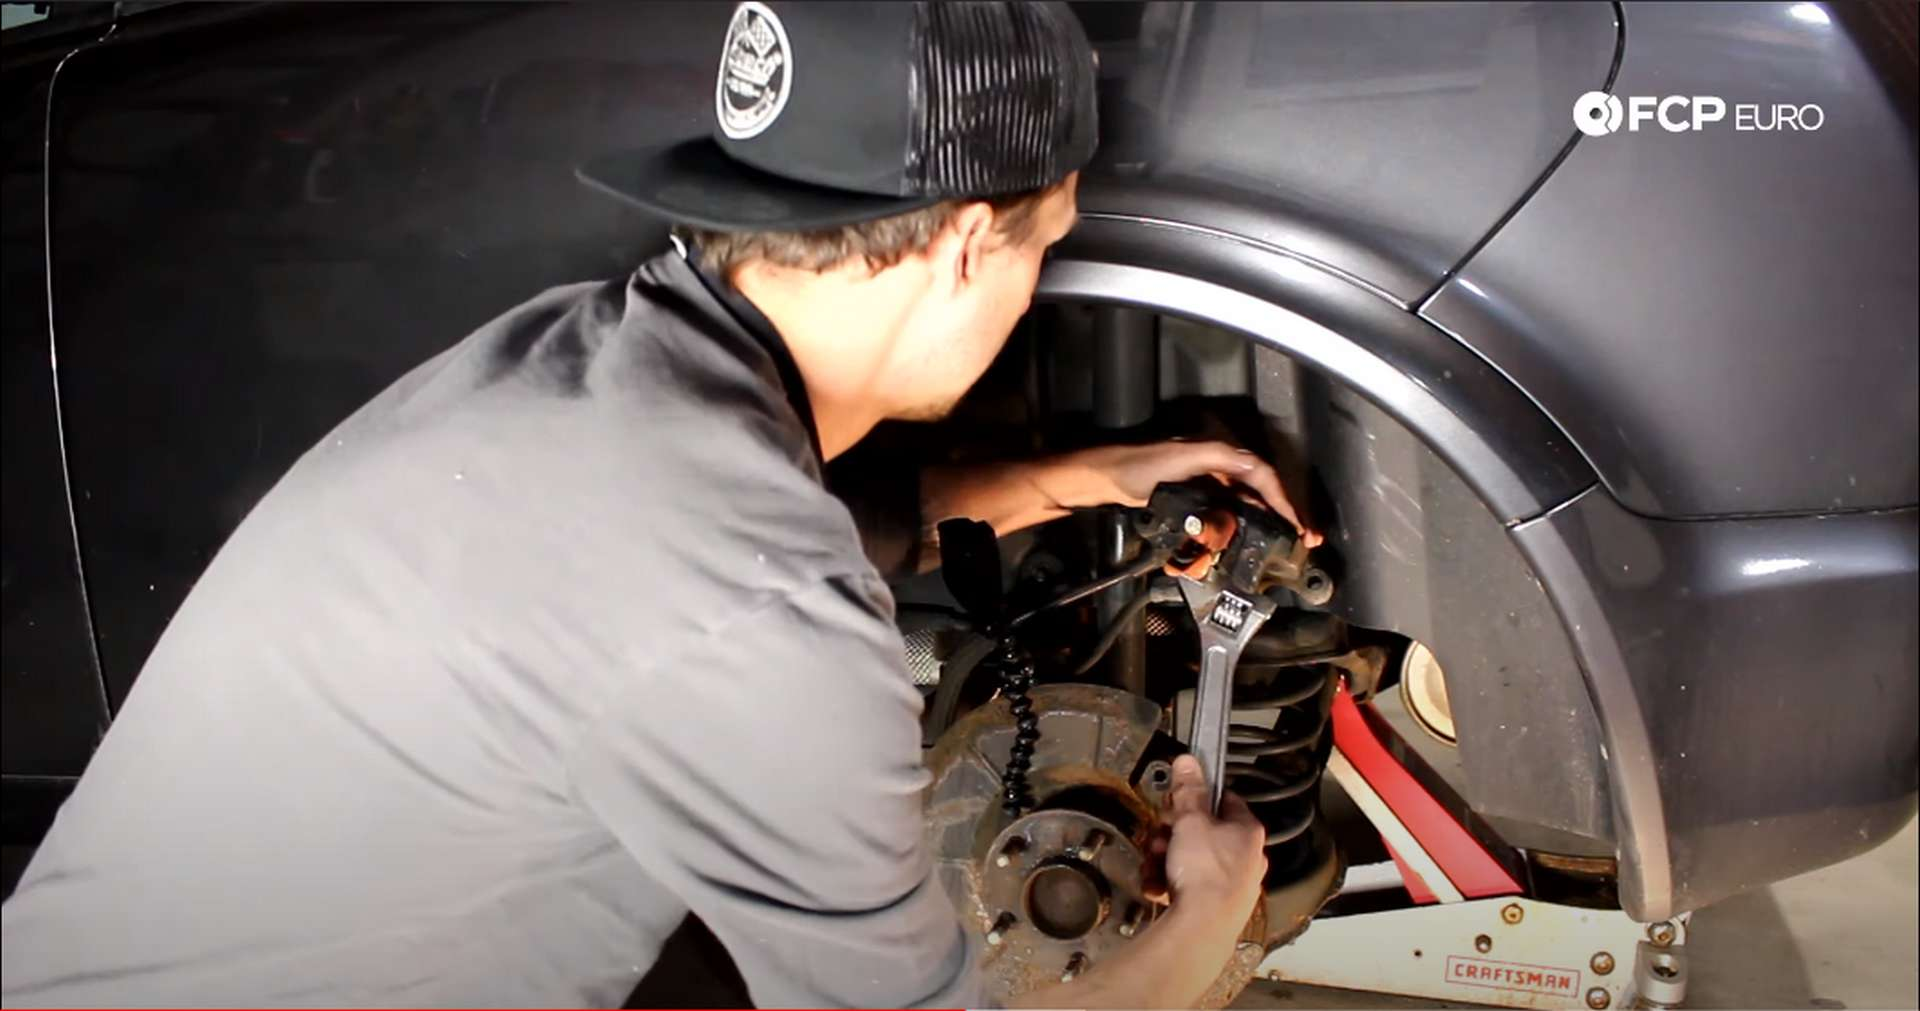 DIY Volvo Rear Brake Job turning pliers with the wrench